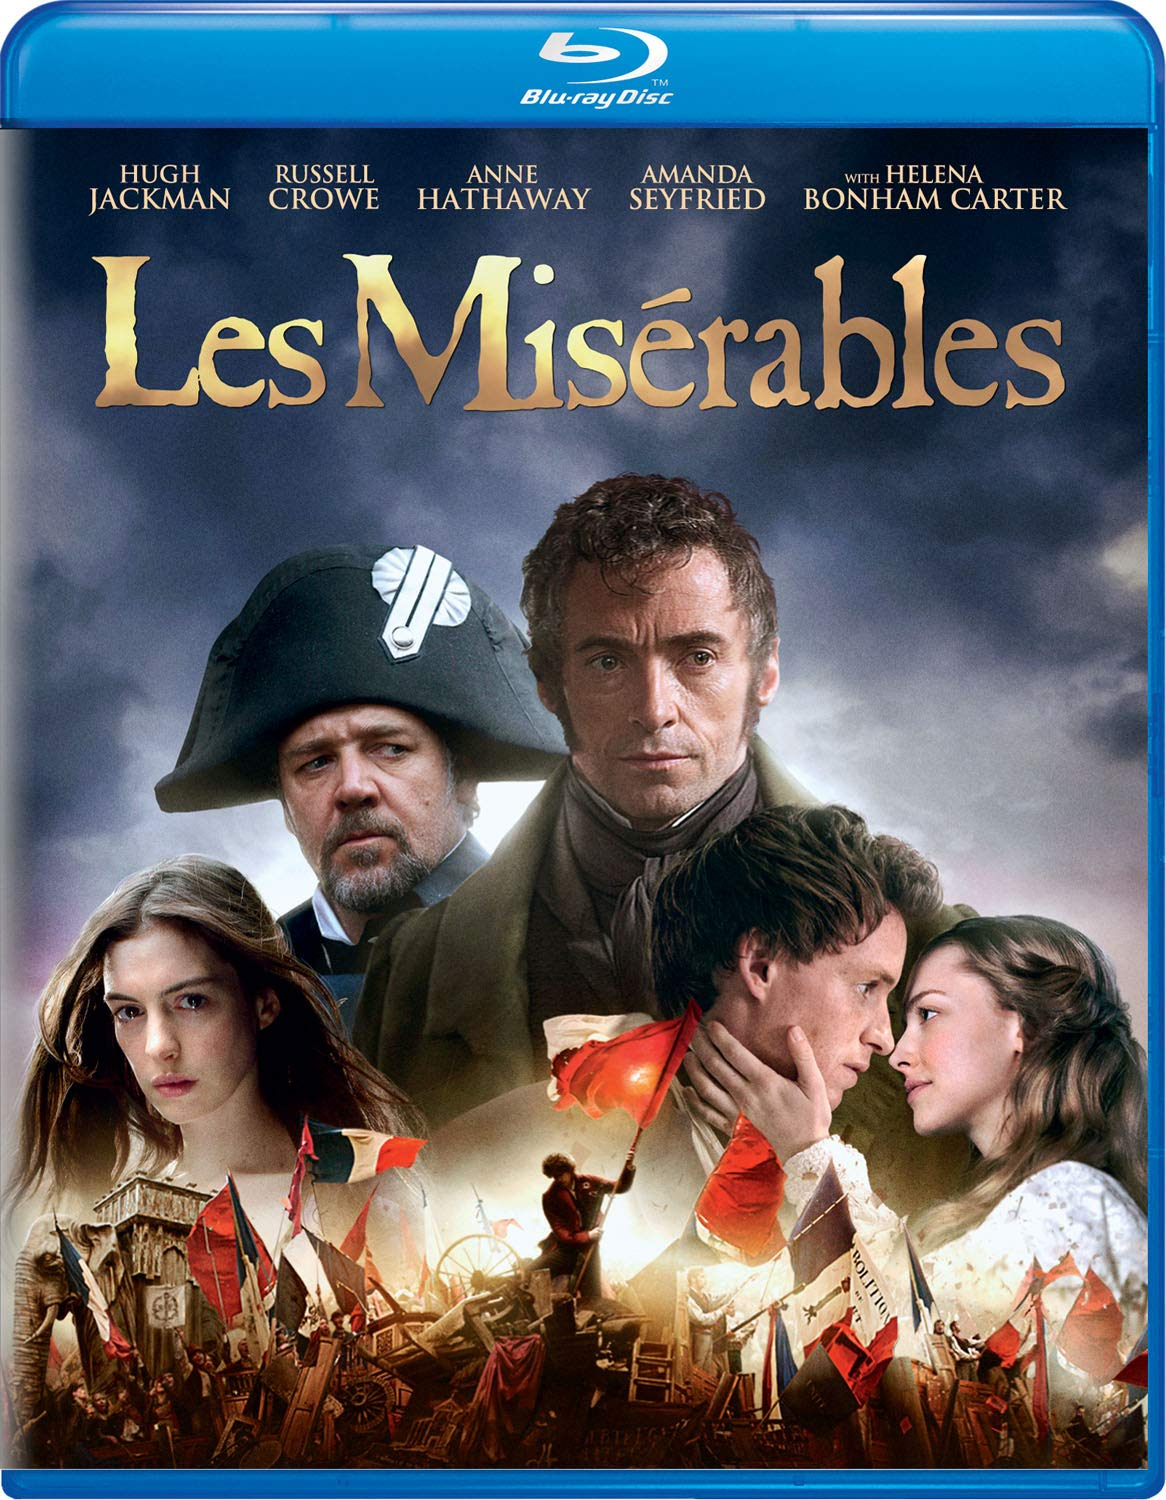 Amazon Com Les Miserables 2012 Blu Ray Hugh Jackman Russell Crowe Anne Hathaway Amanda Seyfried Eddie Redmayne Helena Bonham Carter Sacha Baron Cohen Tom Hooper Tim Bevan Eric Fellner Debra Hayward Cameron Mackintosh William